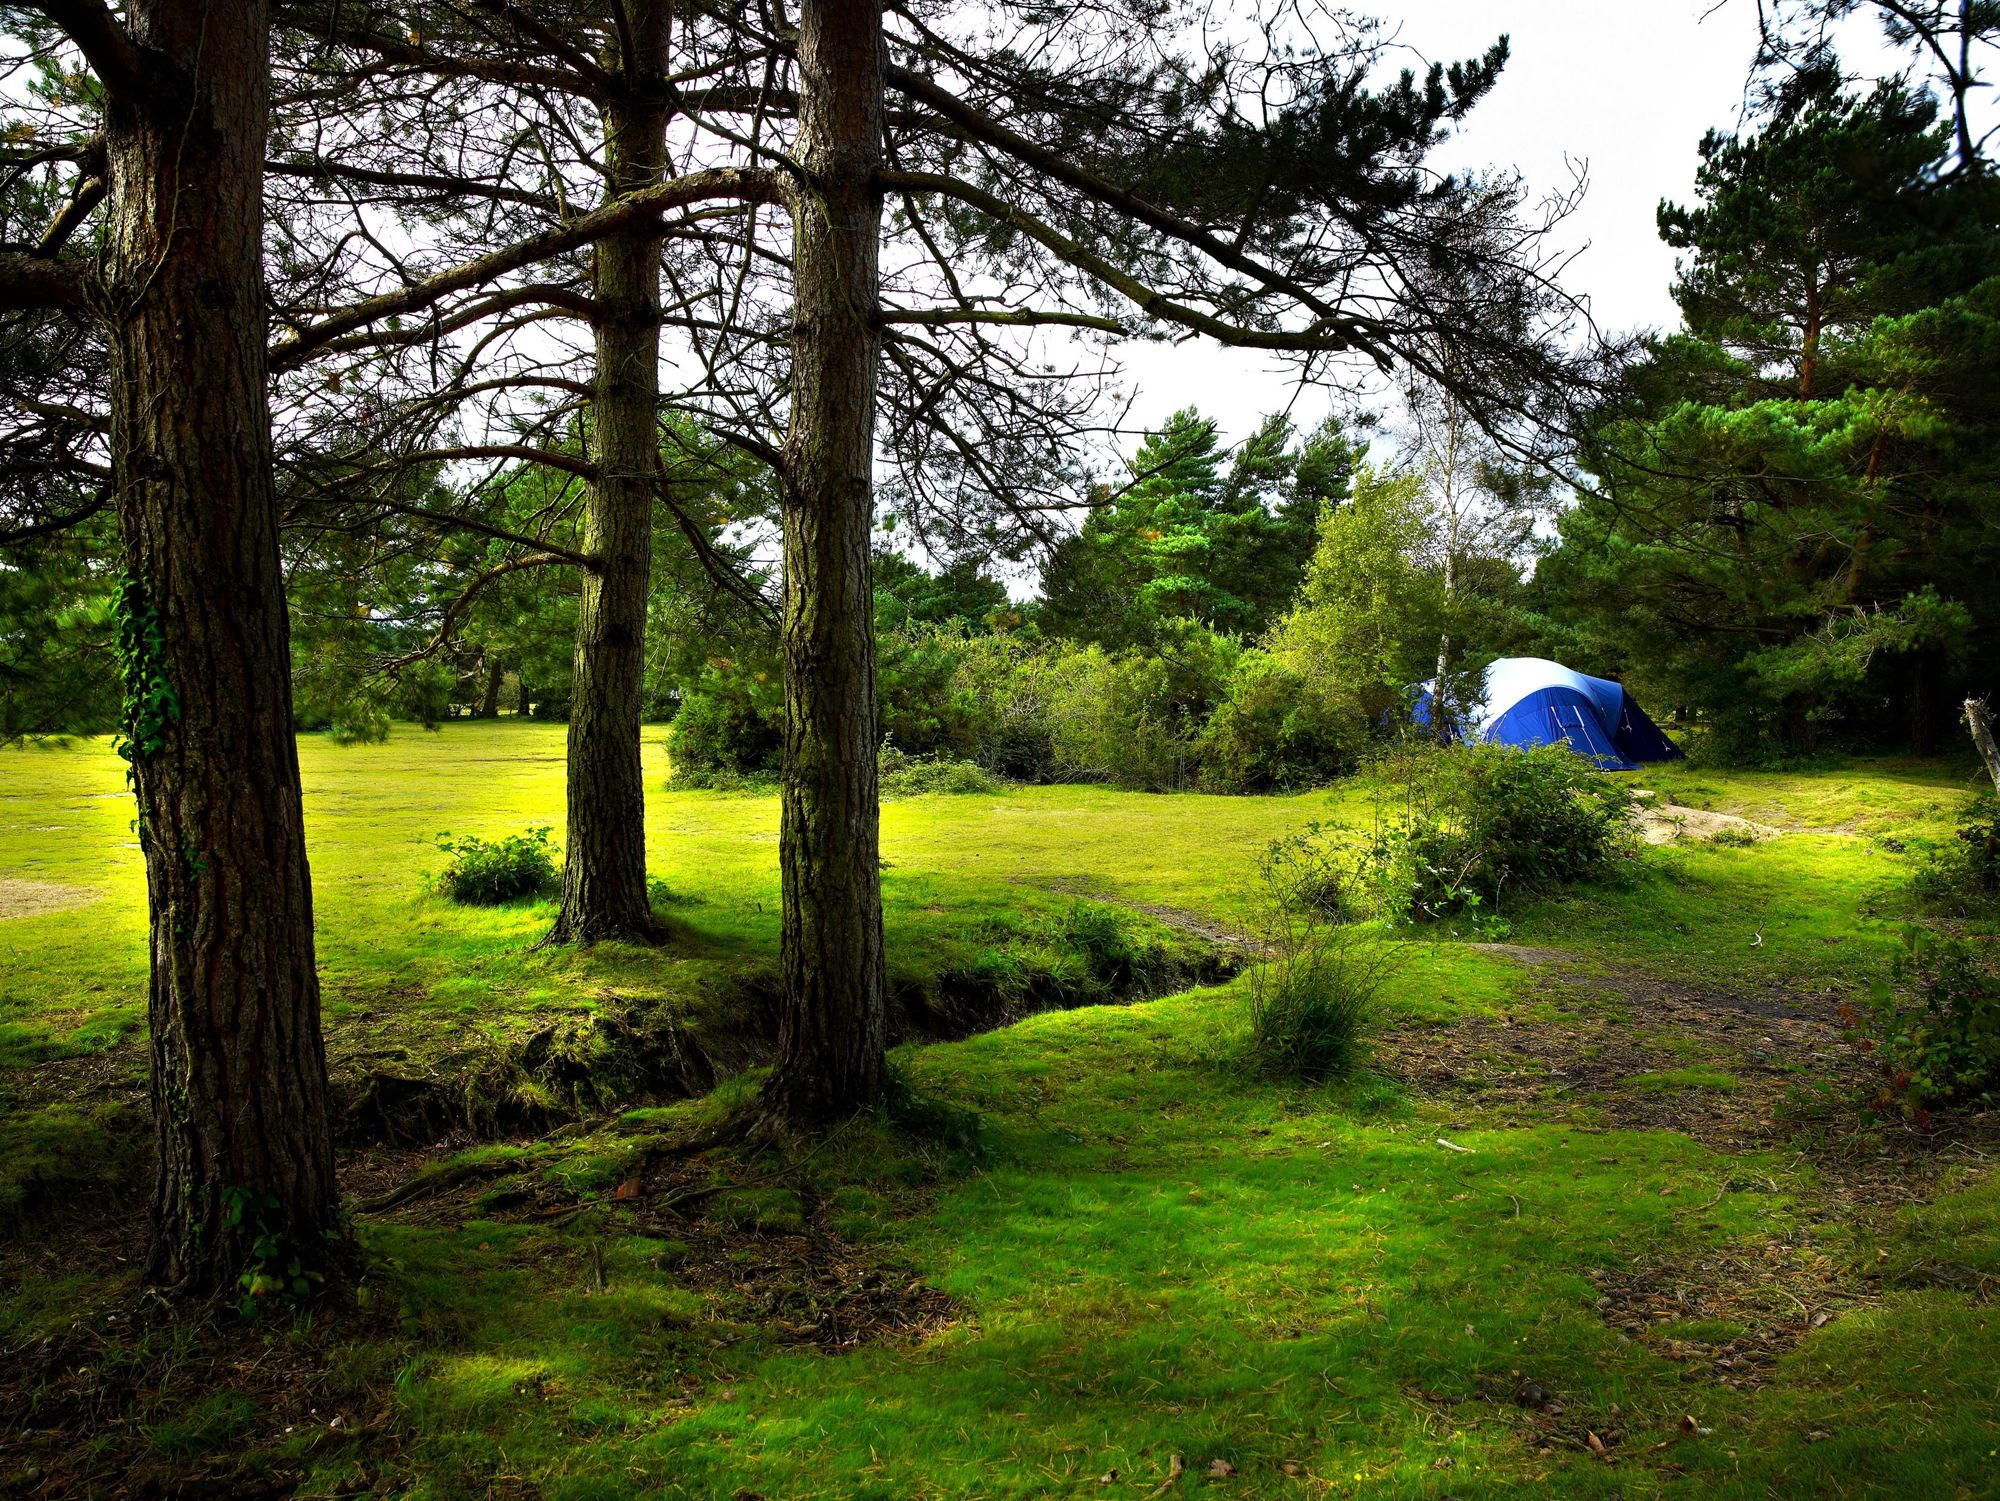 Campsites in Brockenhurst holidays at Cool Places